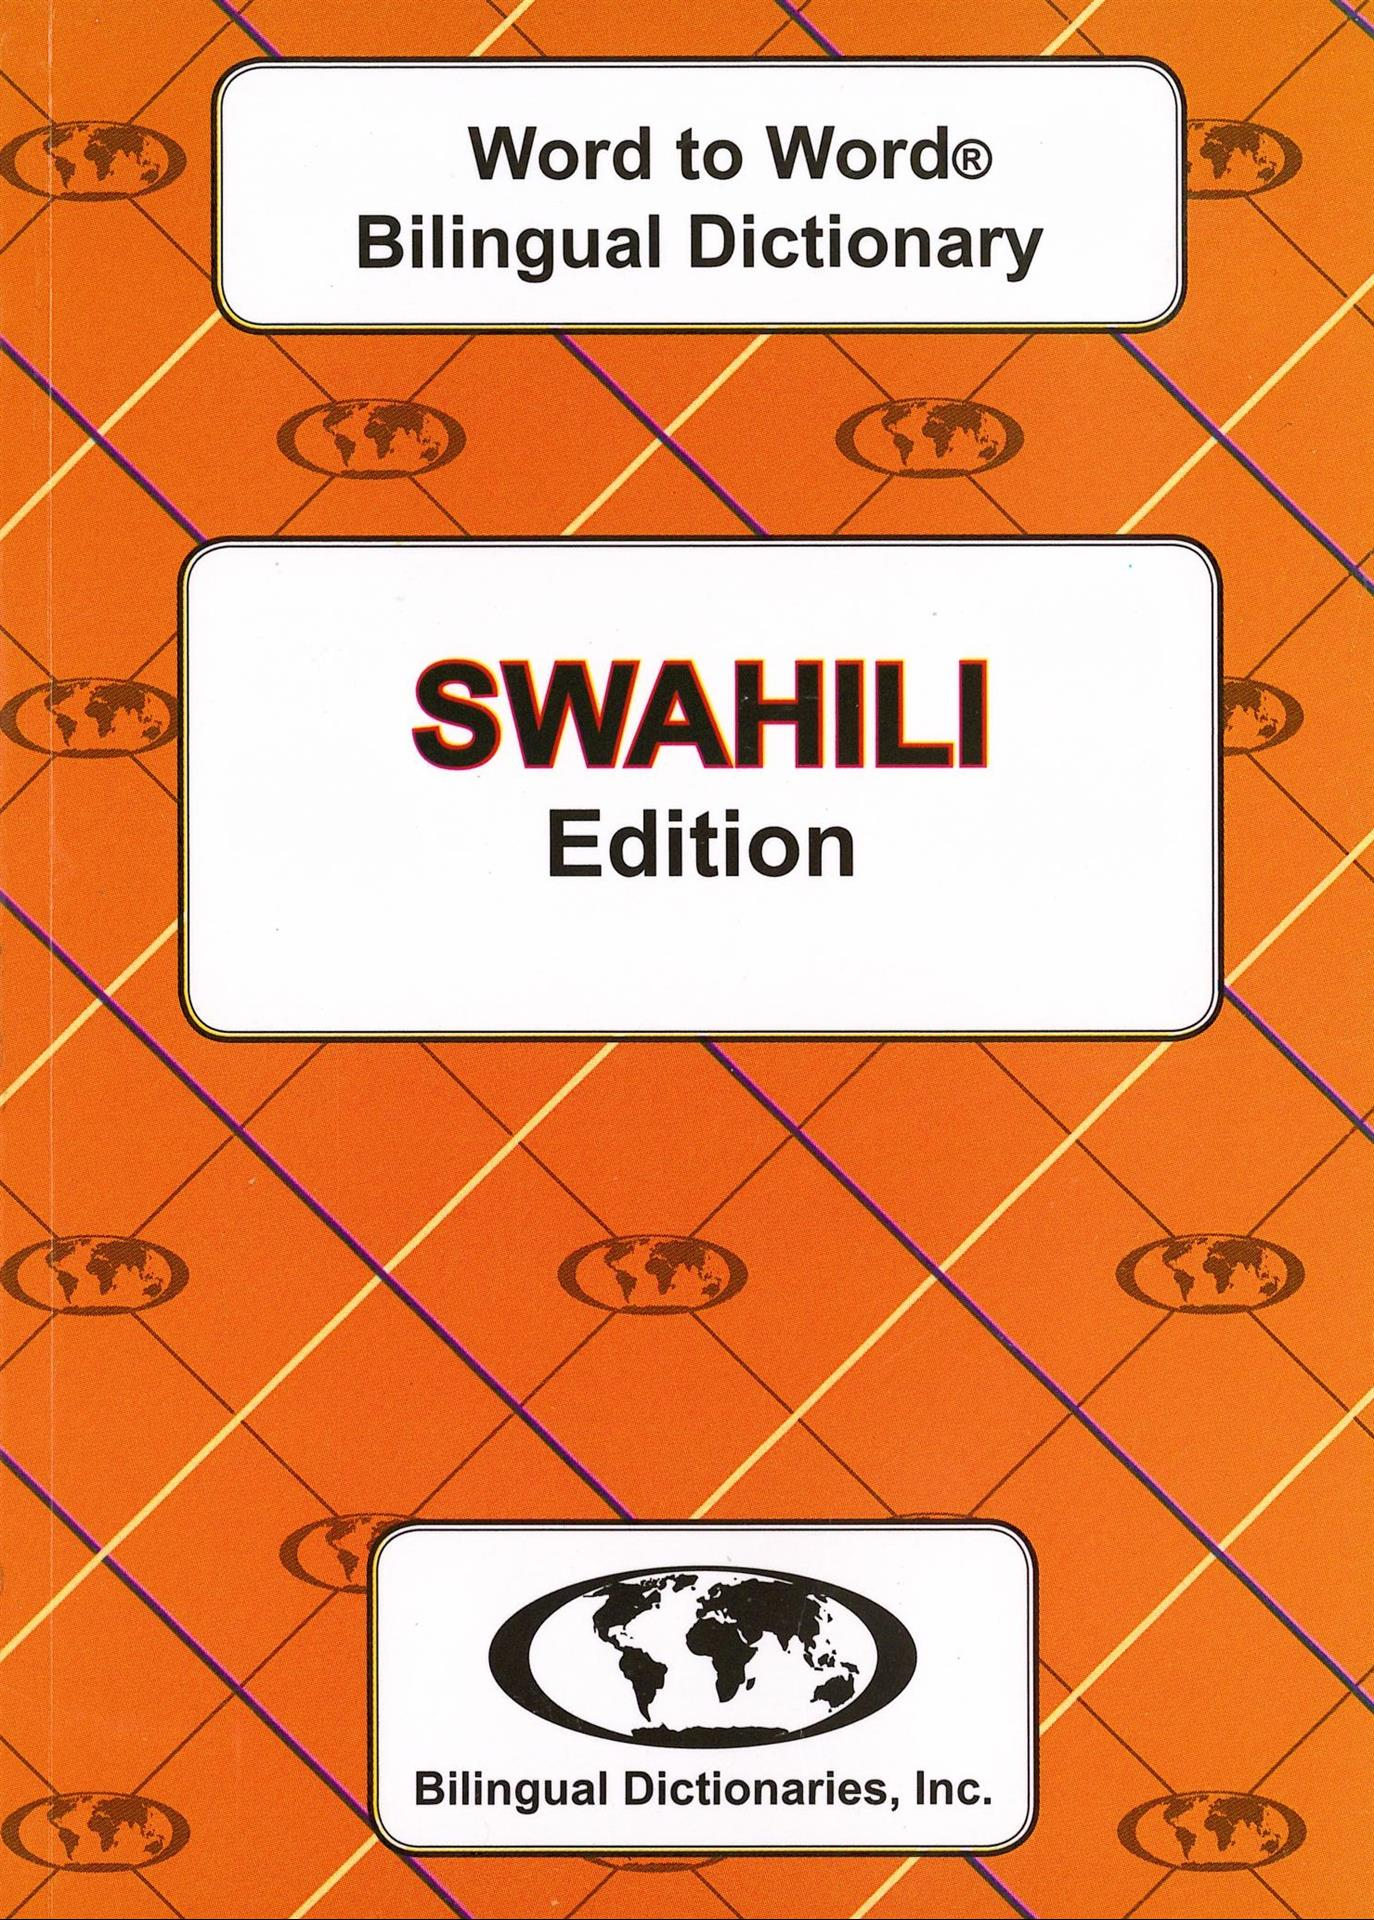 SWAHILI Word to Word Bilingual Dictionary